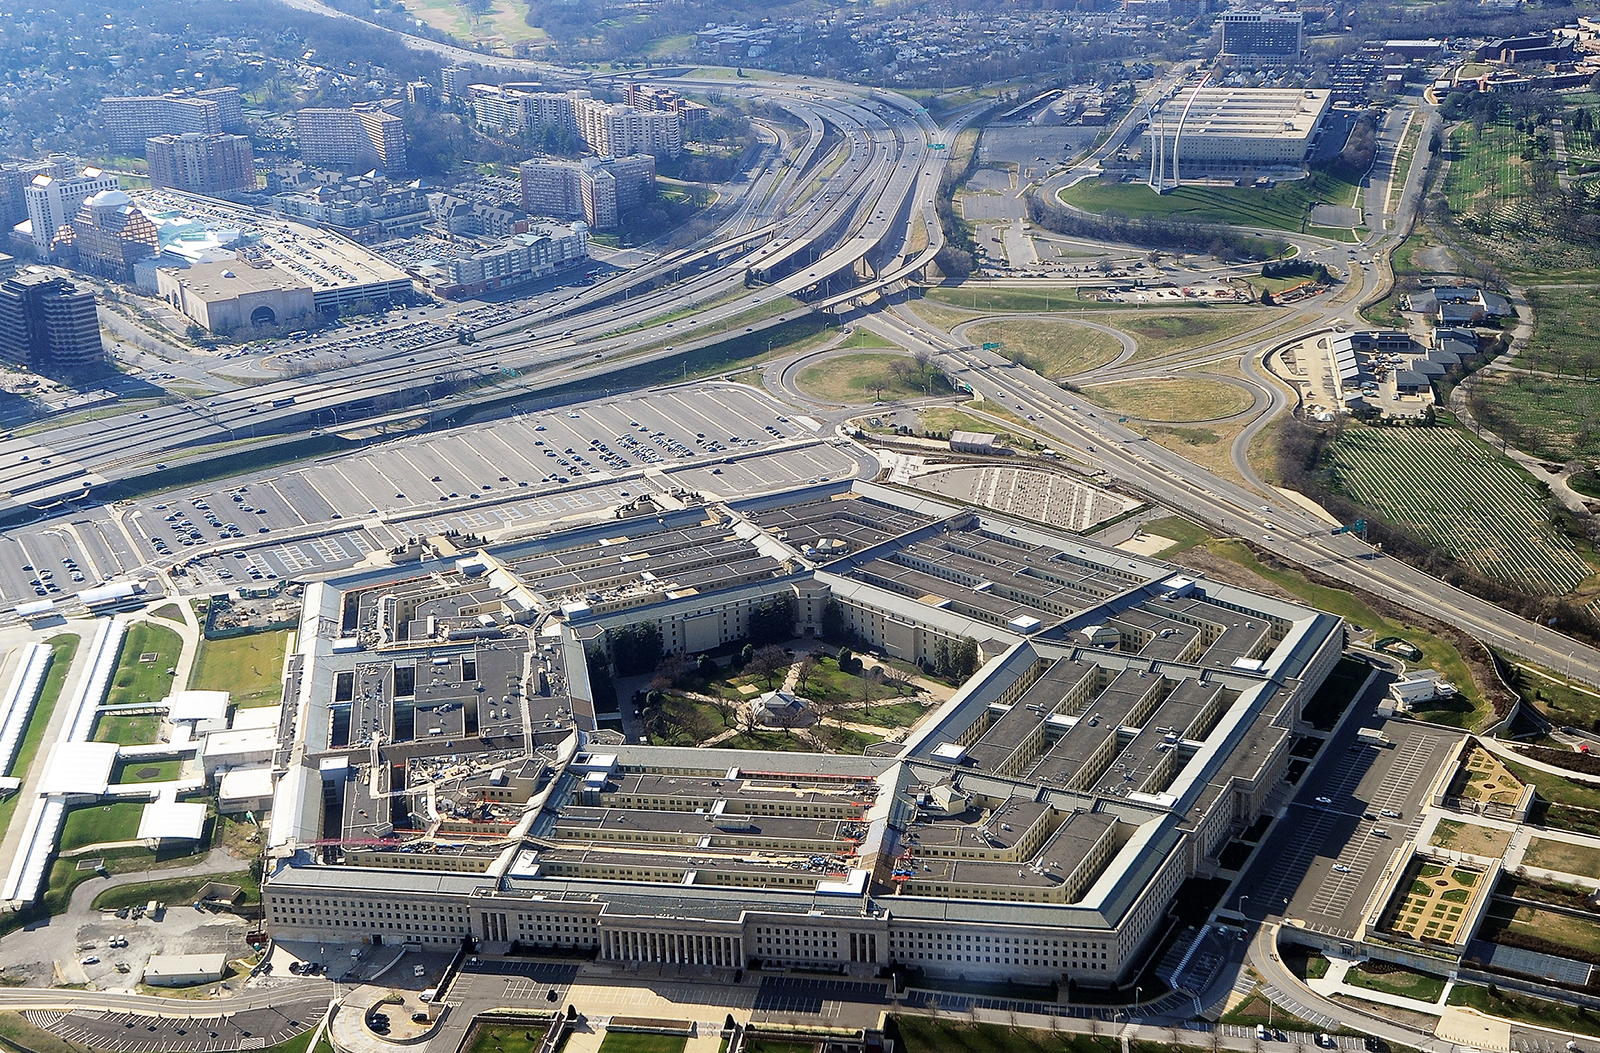 All this news from the Pentagon has people really questioning whether or not UFOS are real. So, are UFOs real, or are they just sci-fi myths?